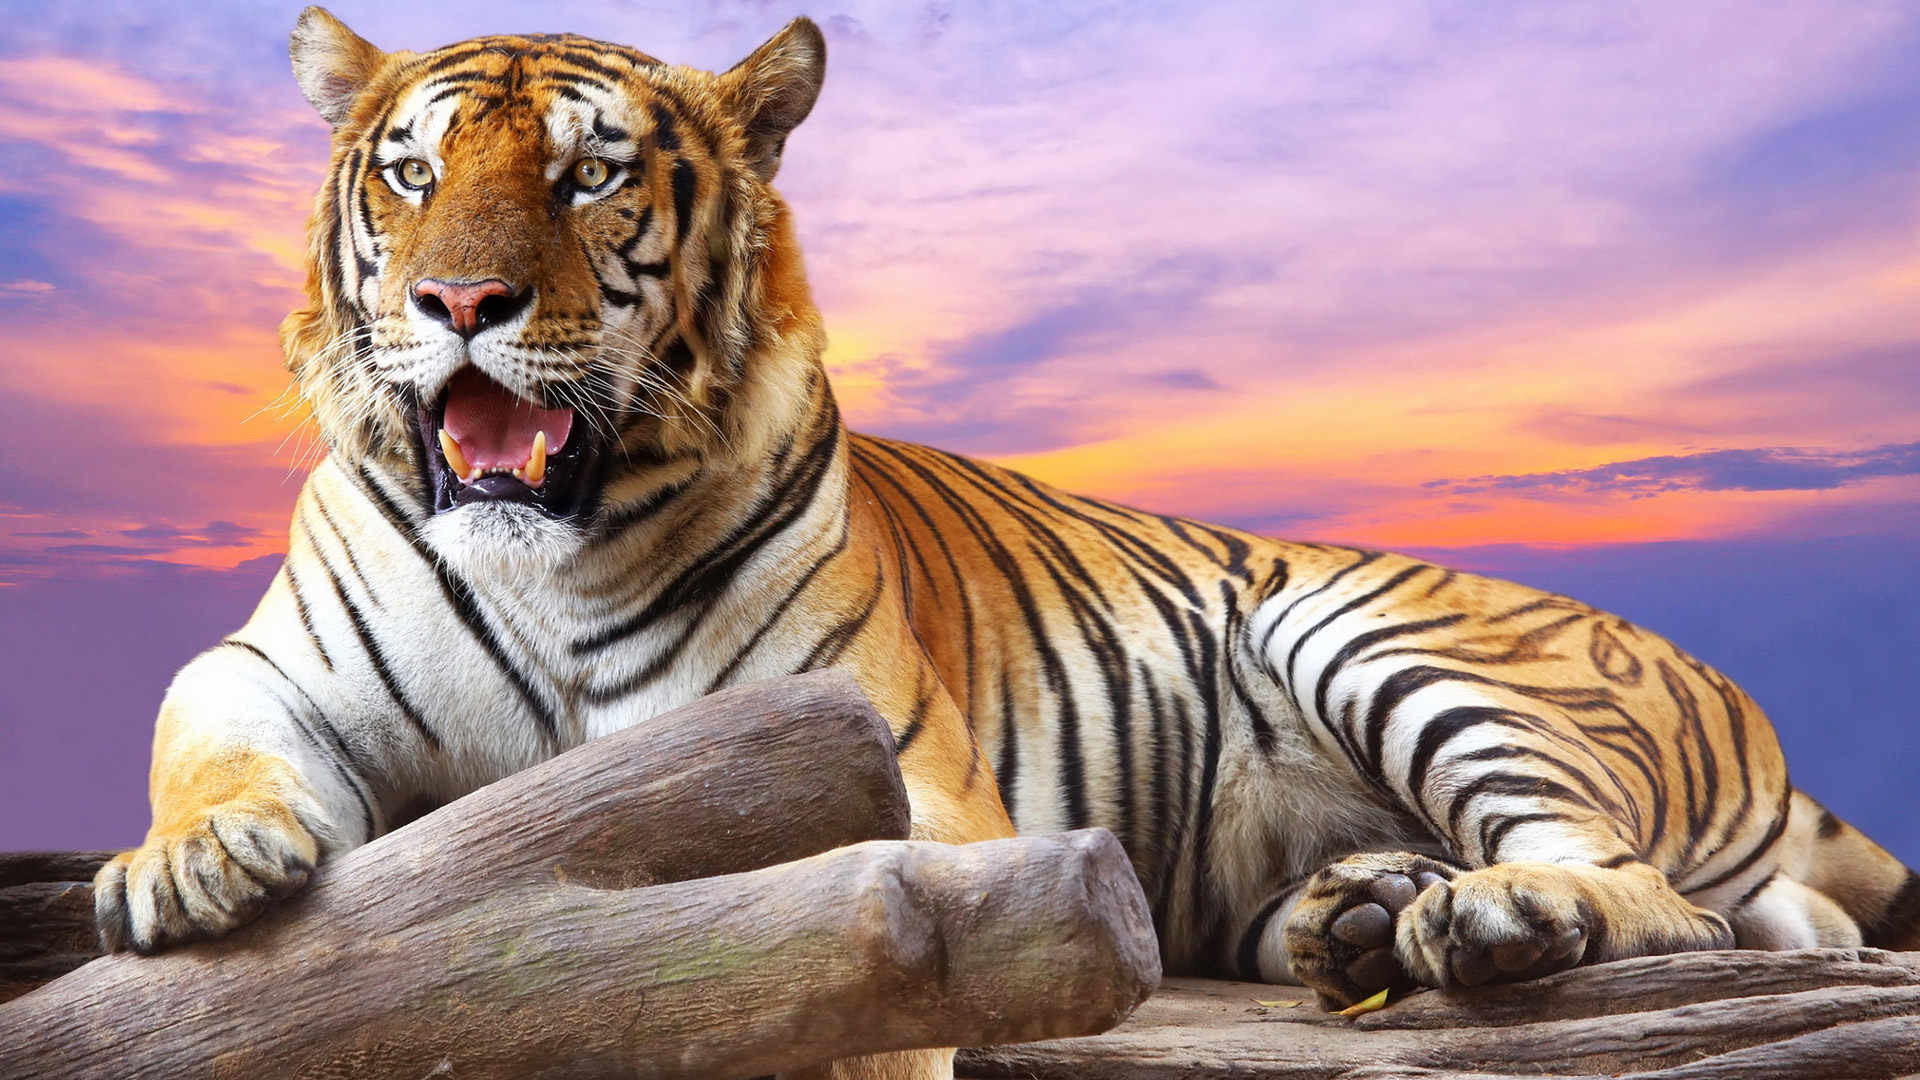 Tiger hd wallpaper wallpapertag - Best animal wallpaper download ...